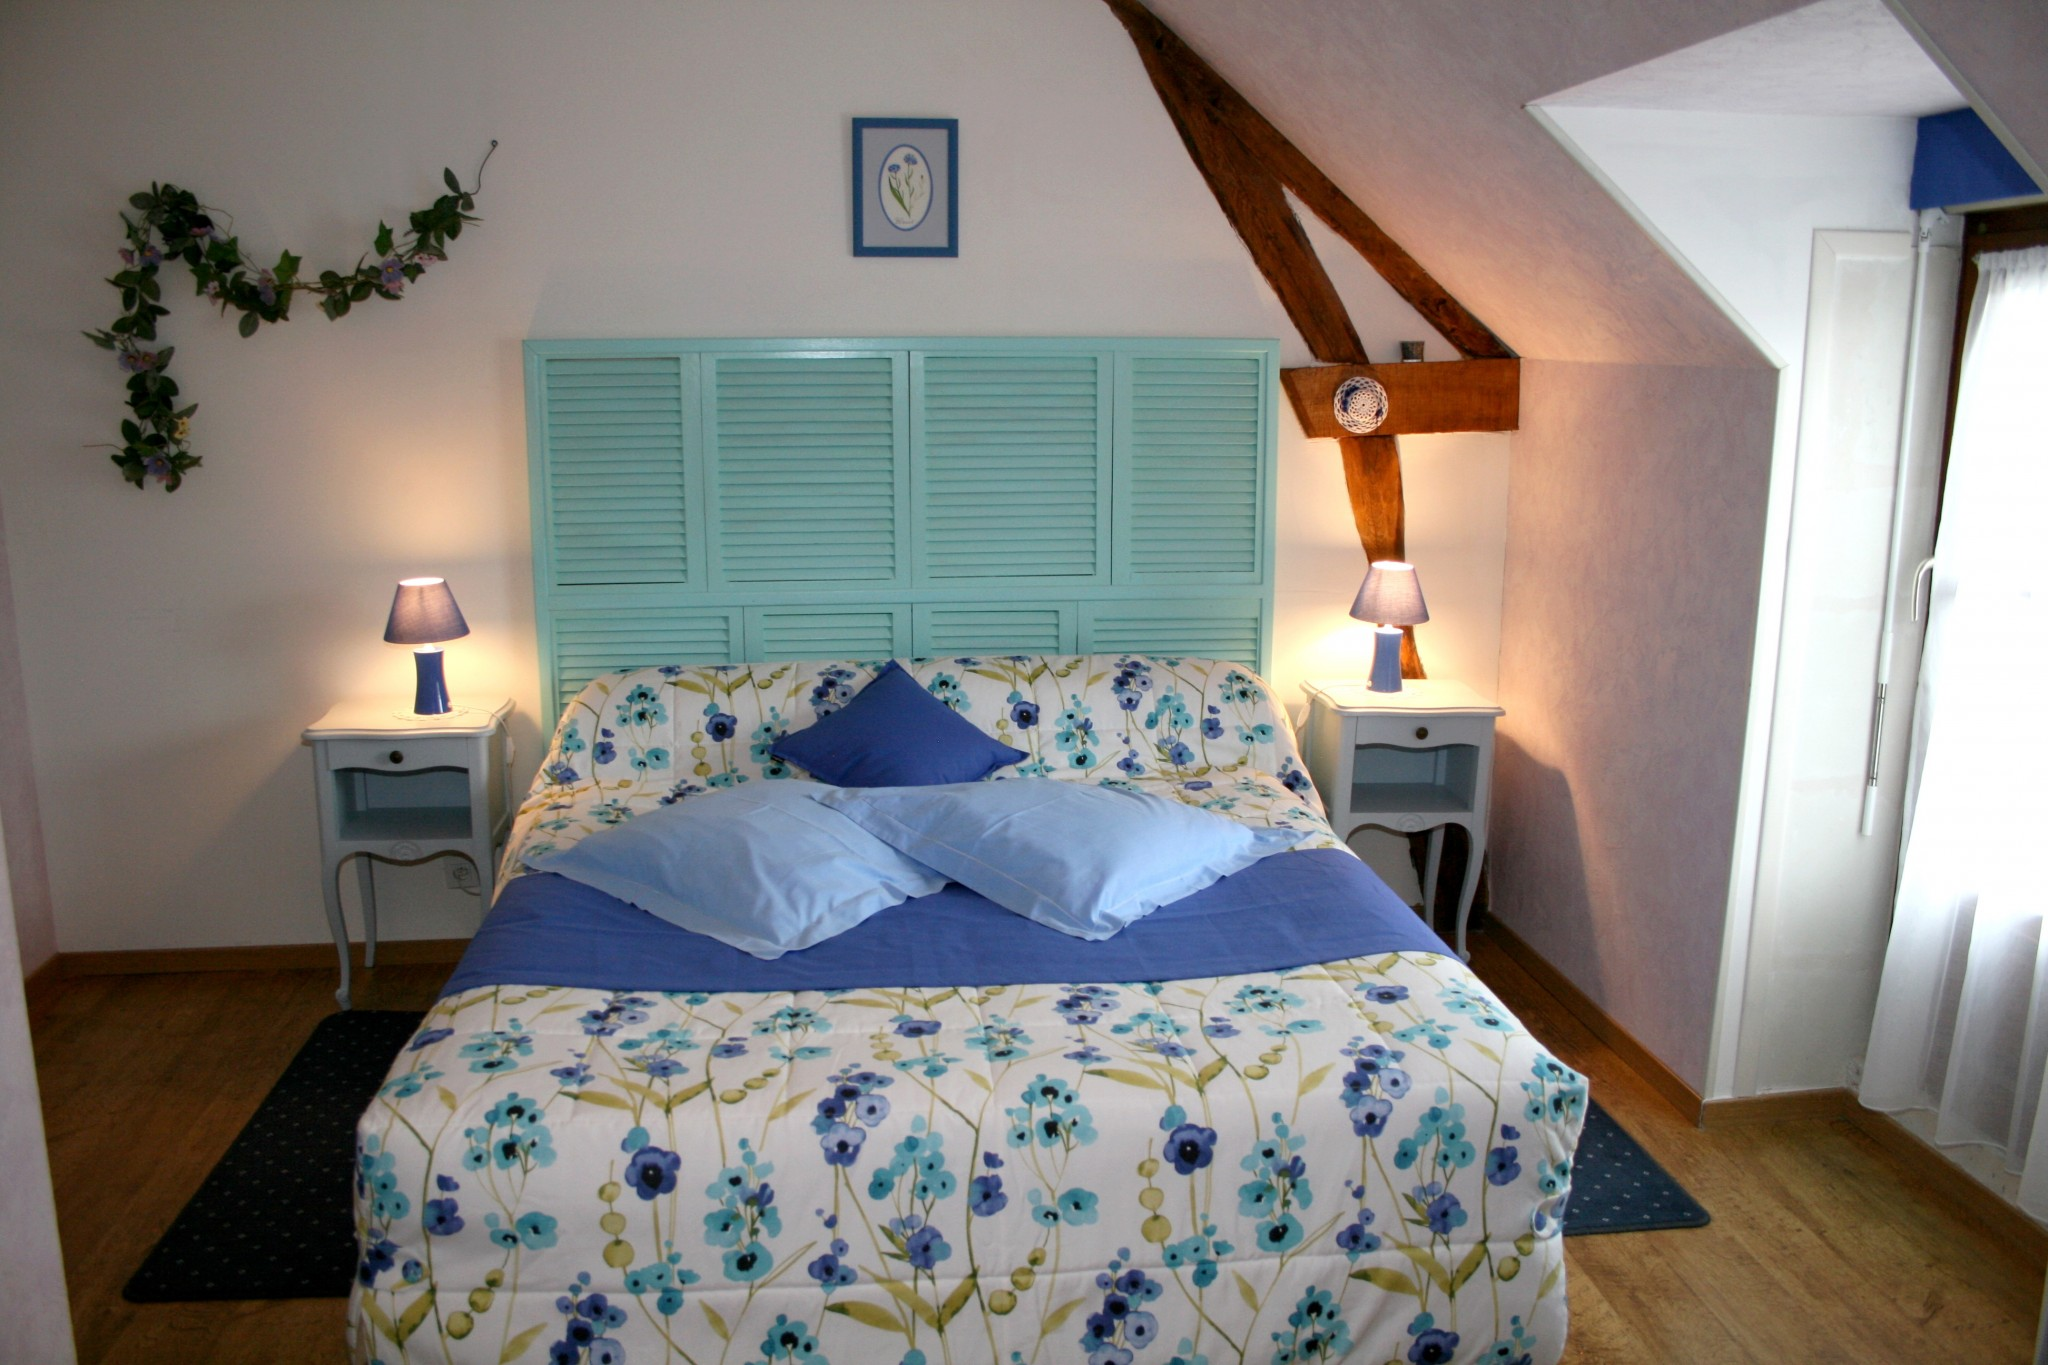 Chambre Hote Zoo Beauval Maison D Hote Touraine Sologne Berry Val De Cher Zoo De Beauval